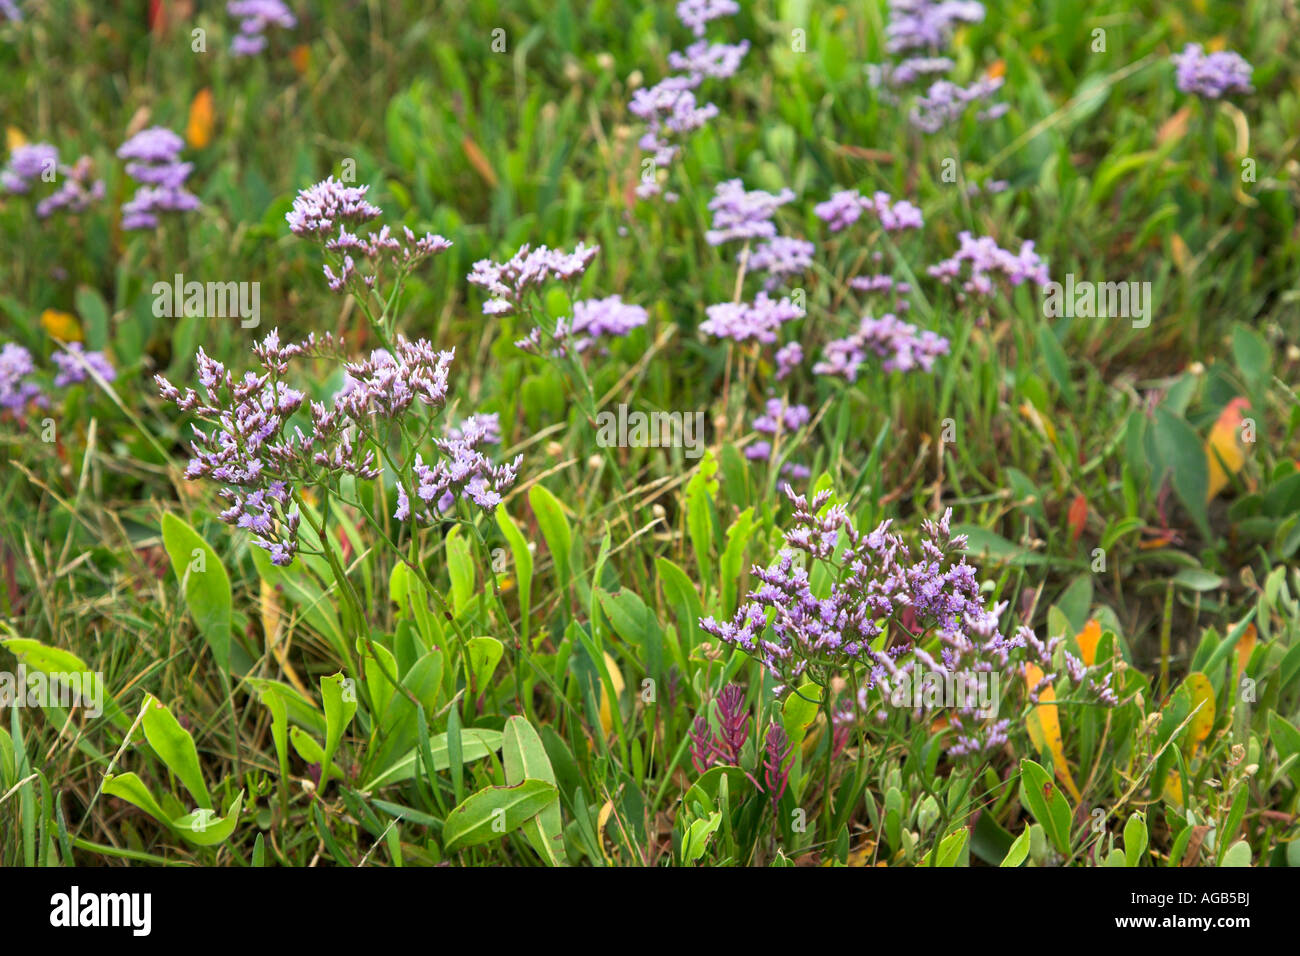 Common Sea Lavender Limonium vulgare growing on salt marsh, Suffolk coast, England - Stock Image